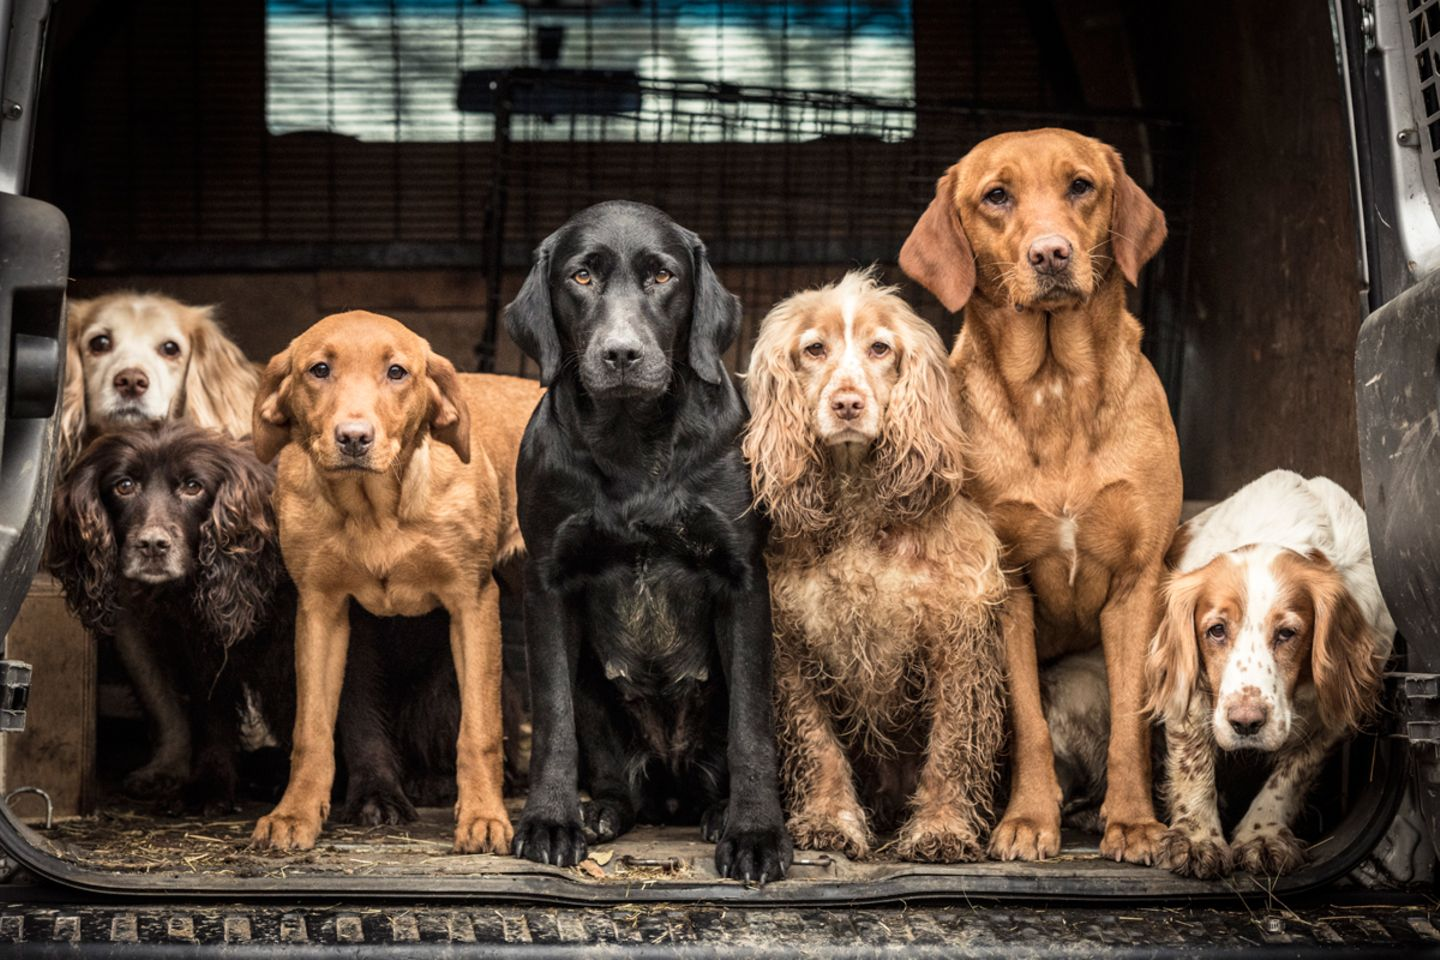 Tracy Kidd/Dog Photographer of the Year 2018